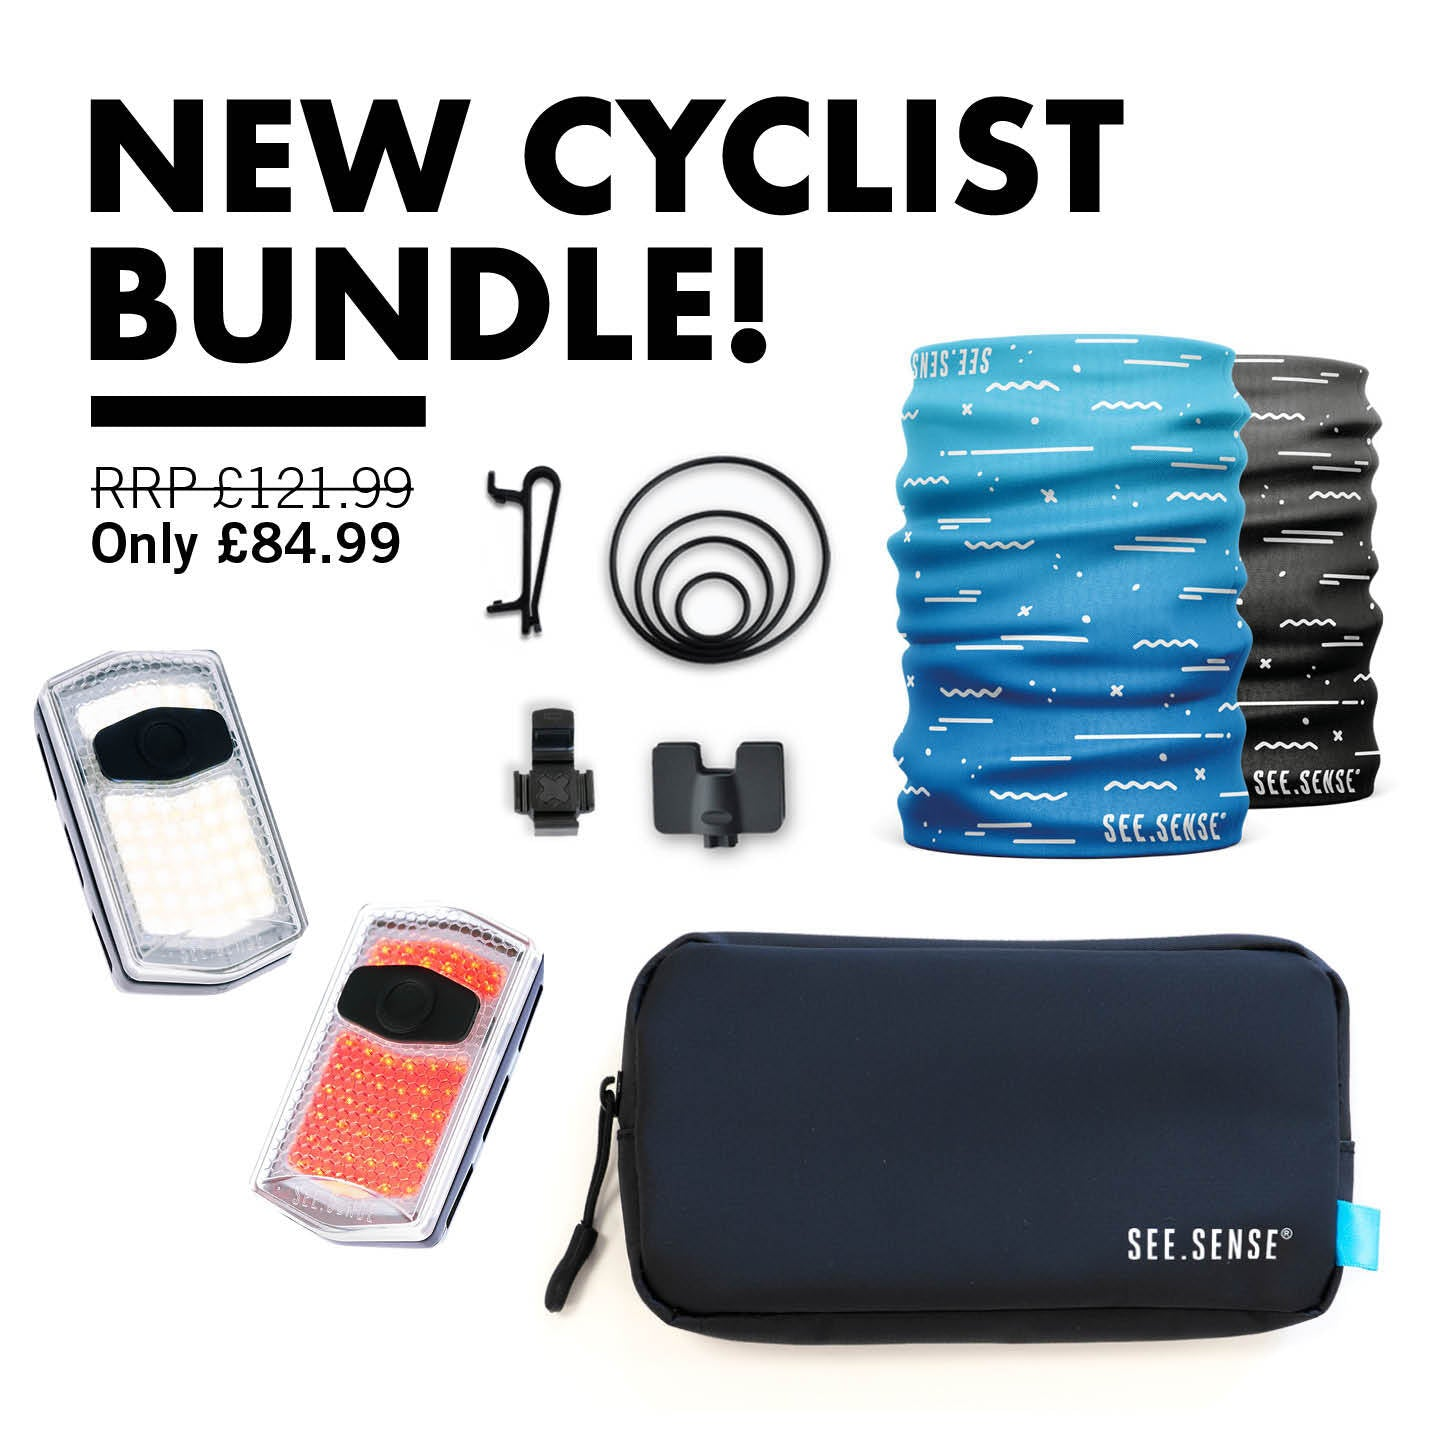 New Cyclist Bundle